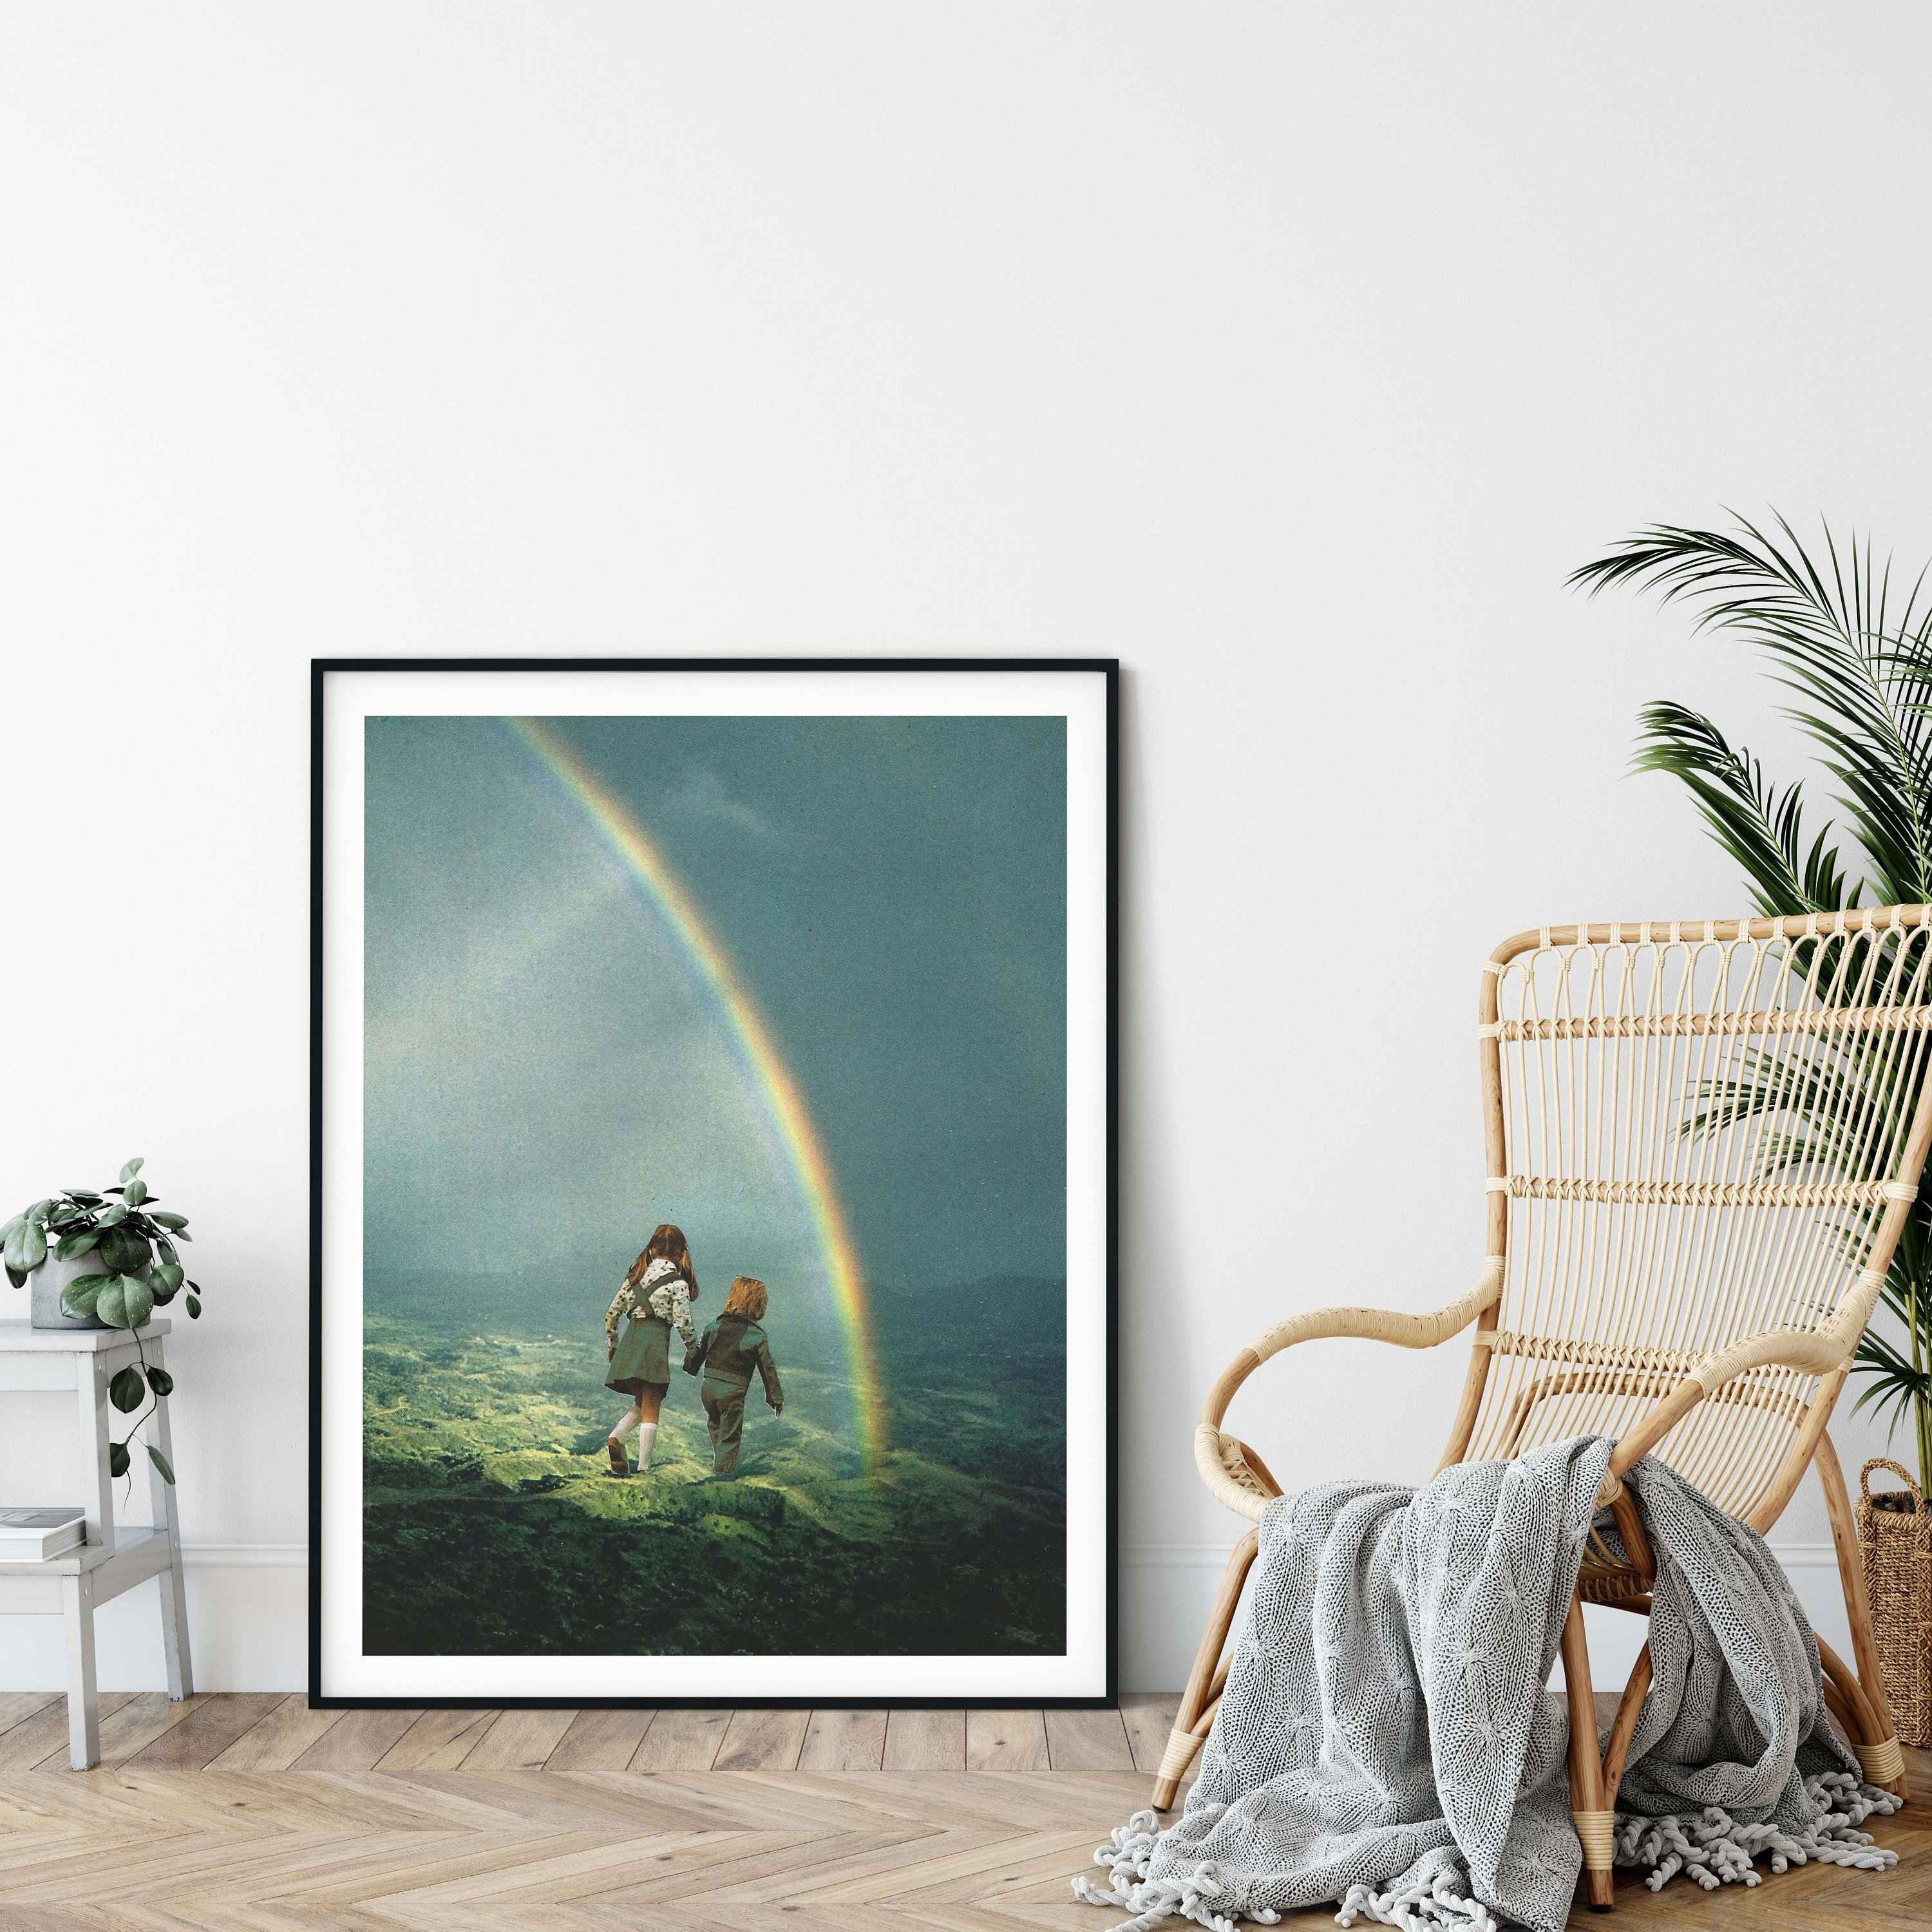 Rainbow print large print large wall art extra large wall art large wall print hallway art livingroom art